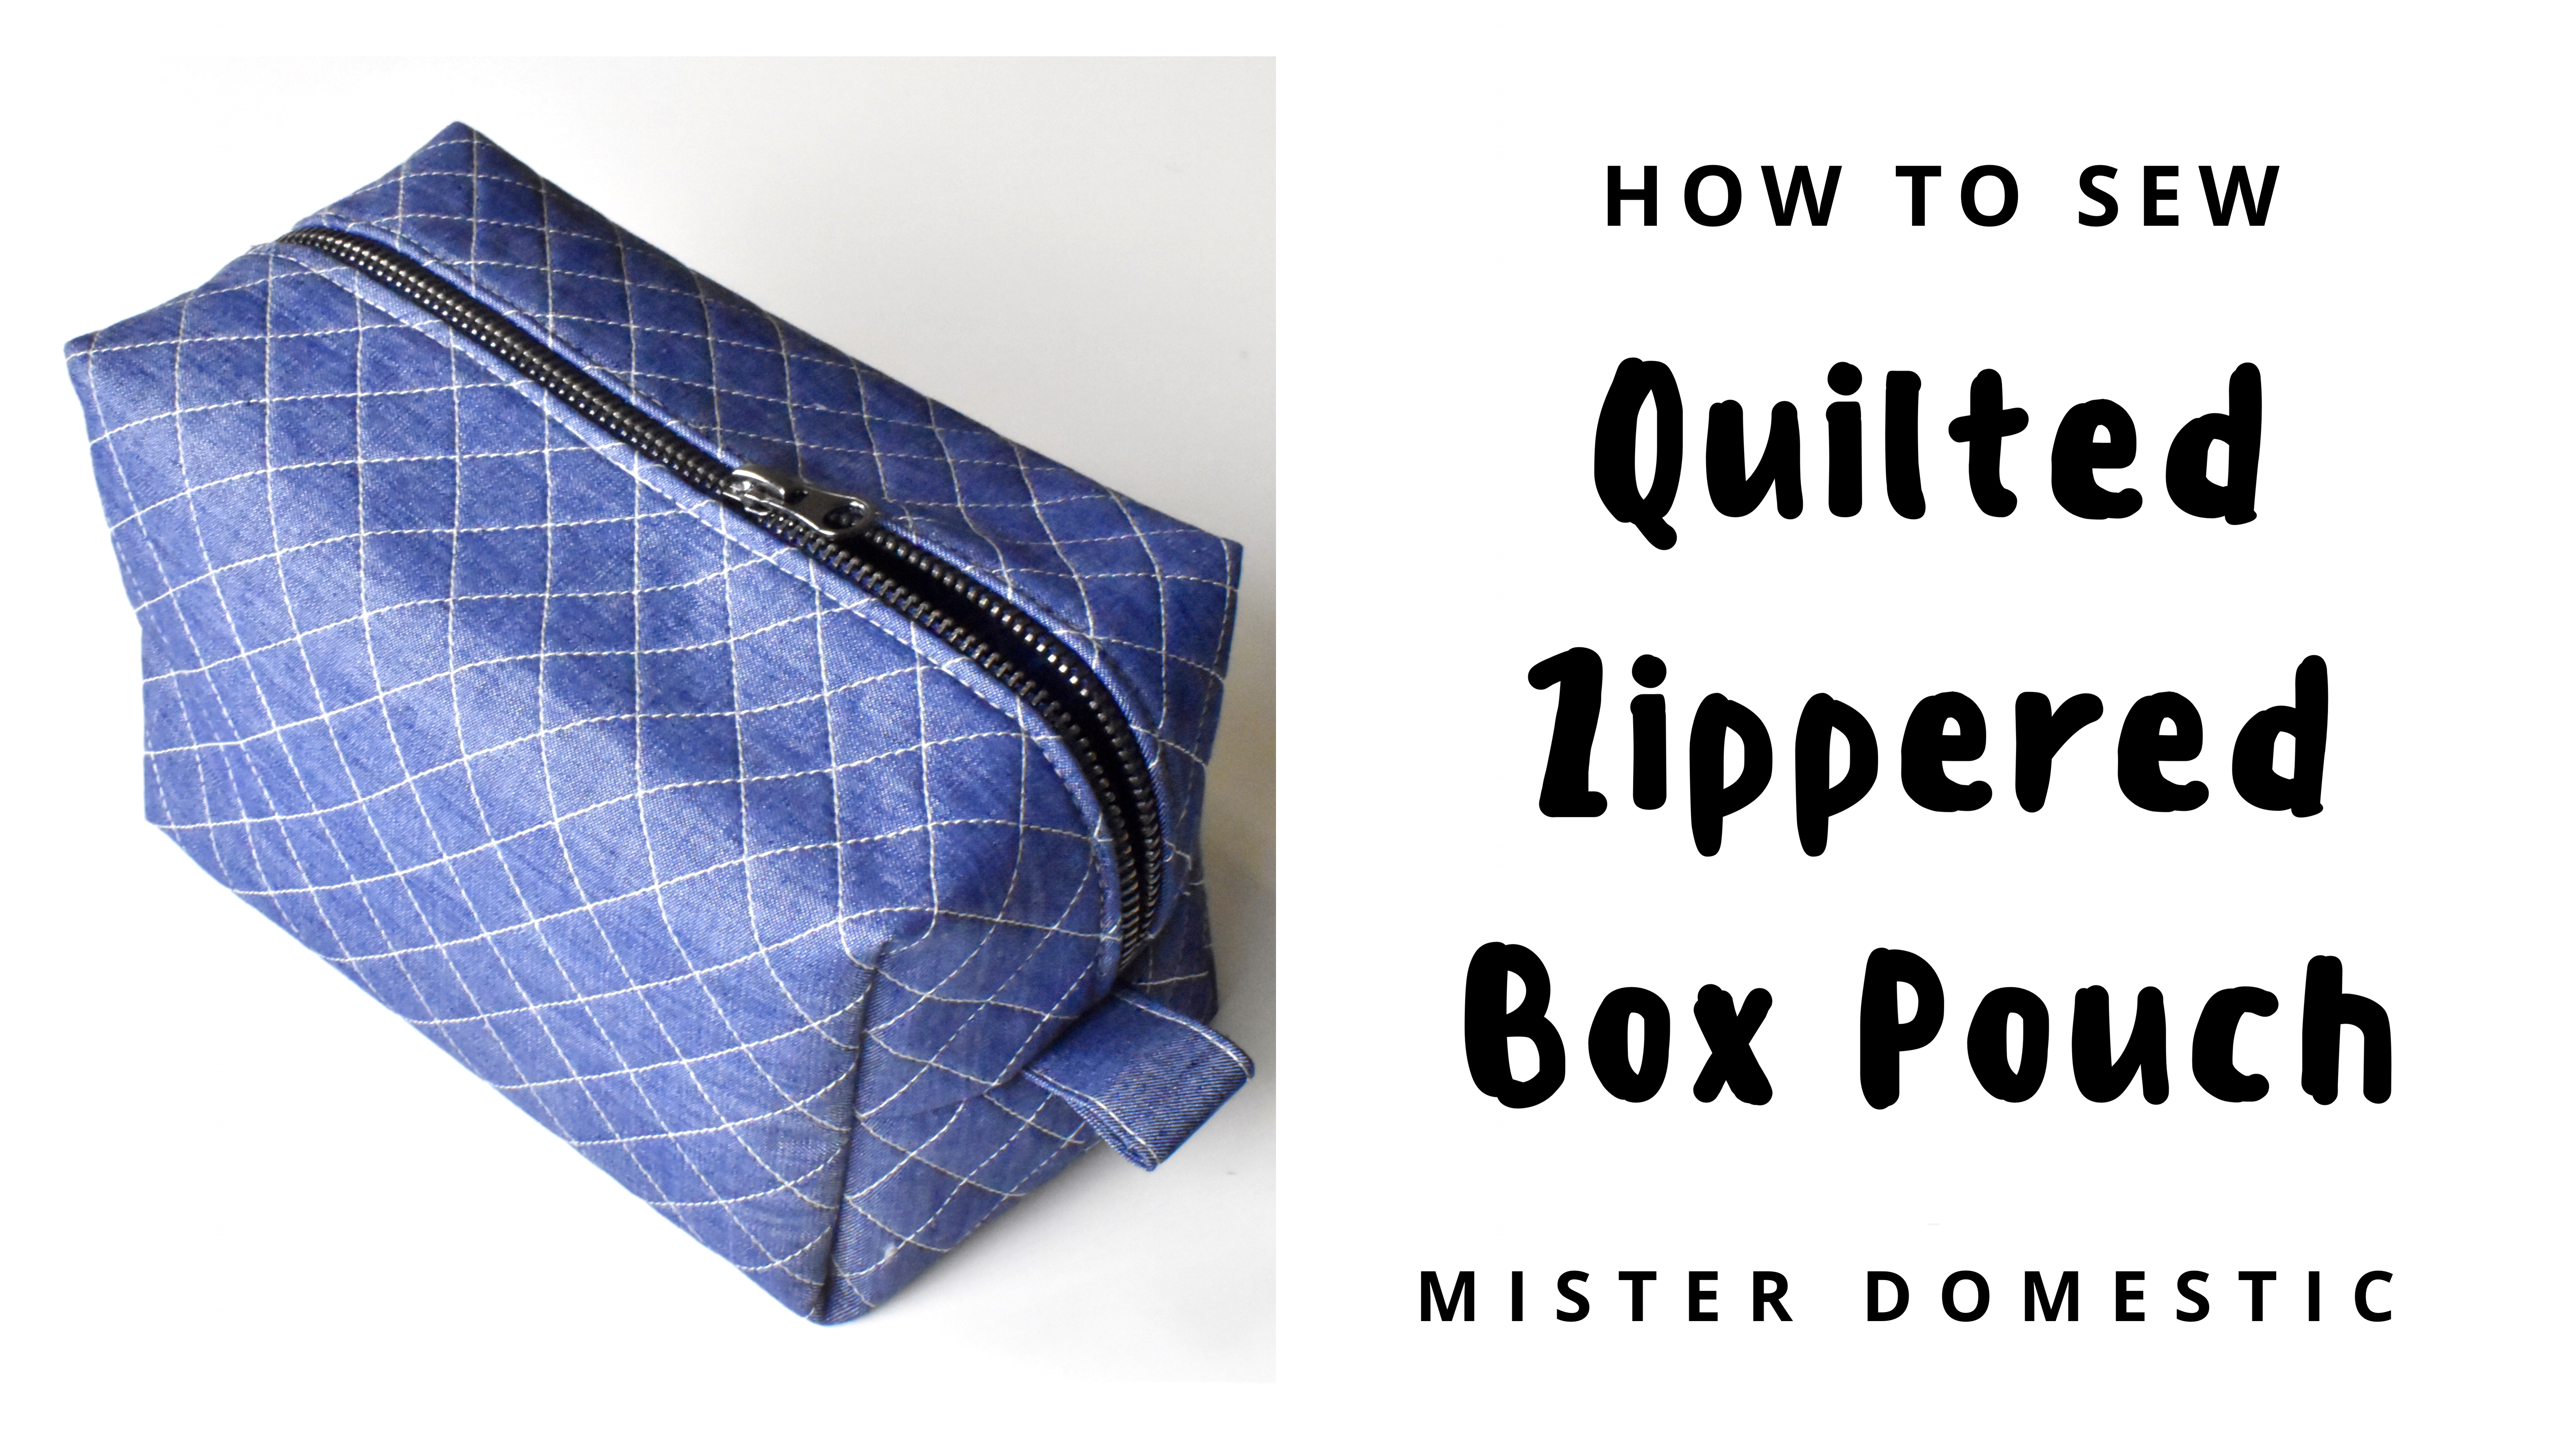 Quilted Zippered Box Pouch copy.jpg